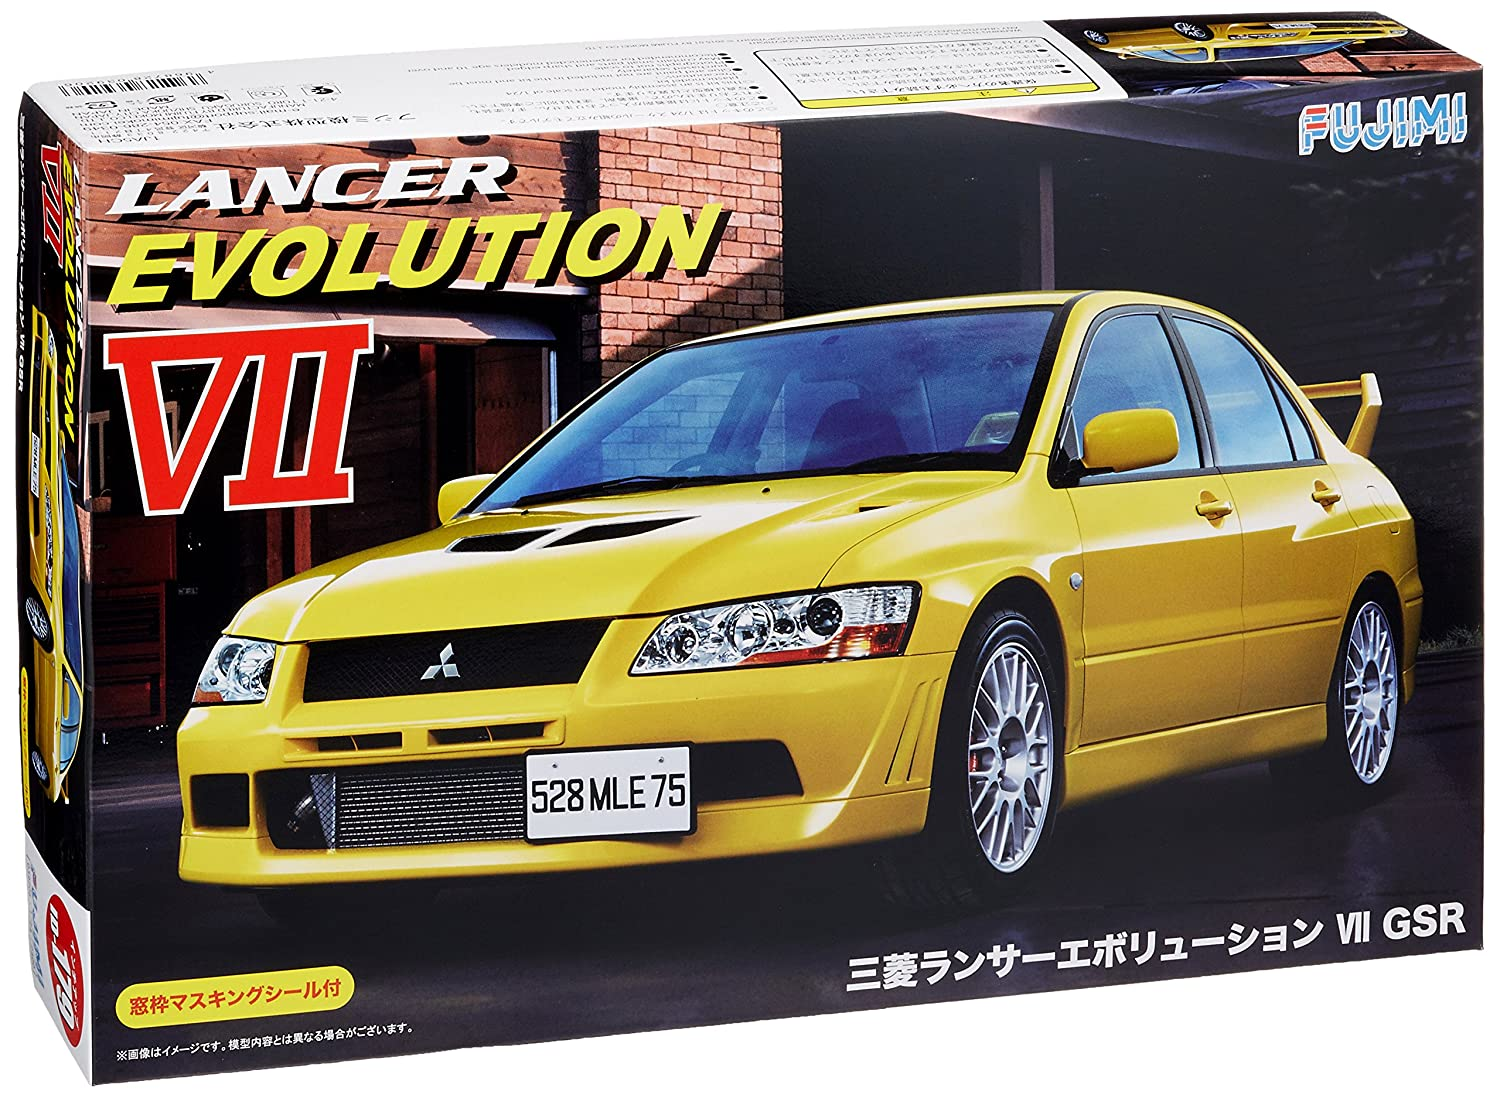 1/24 Inch Series No.179 Mitsubishi Lancer Evolution VII GSR